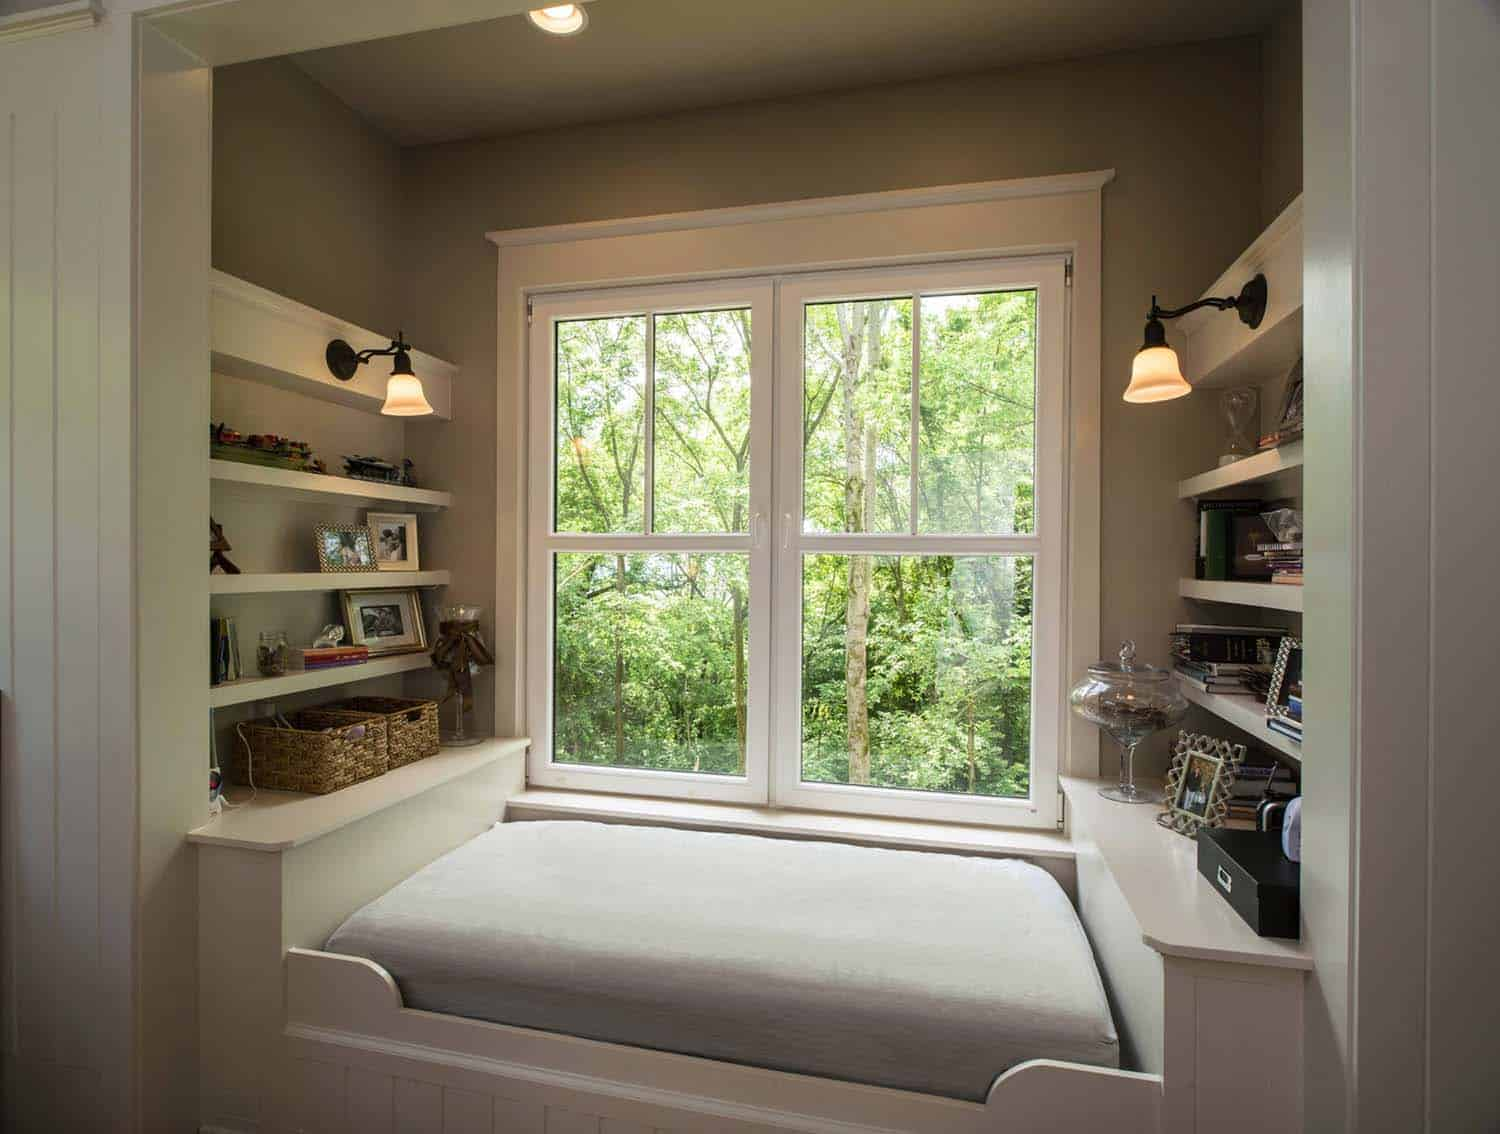 Cozy Reading Nooks For Lounging-20-1 Kindesign